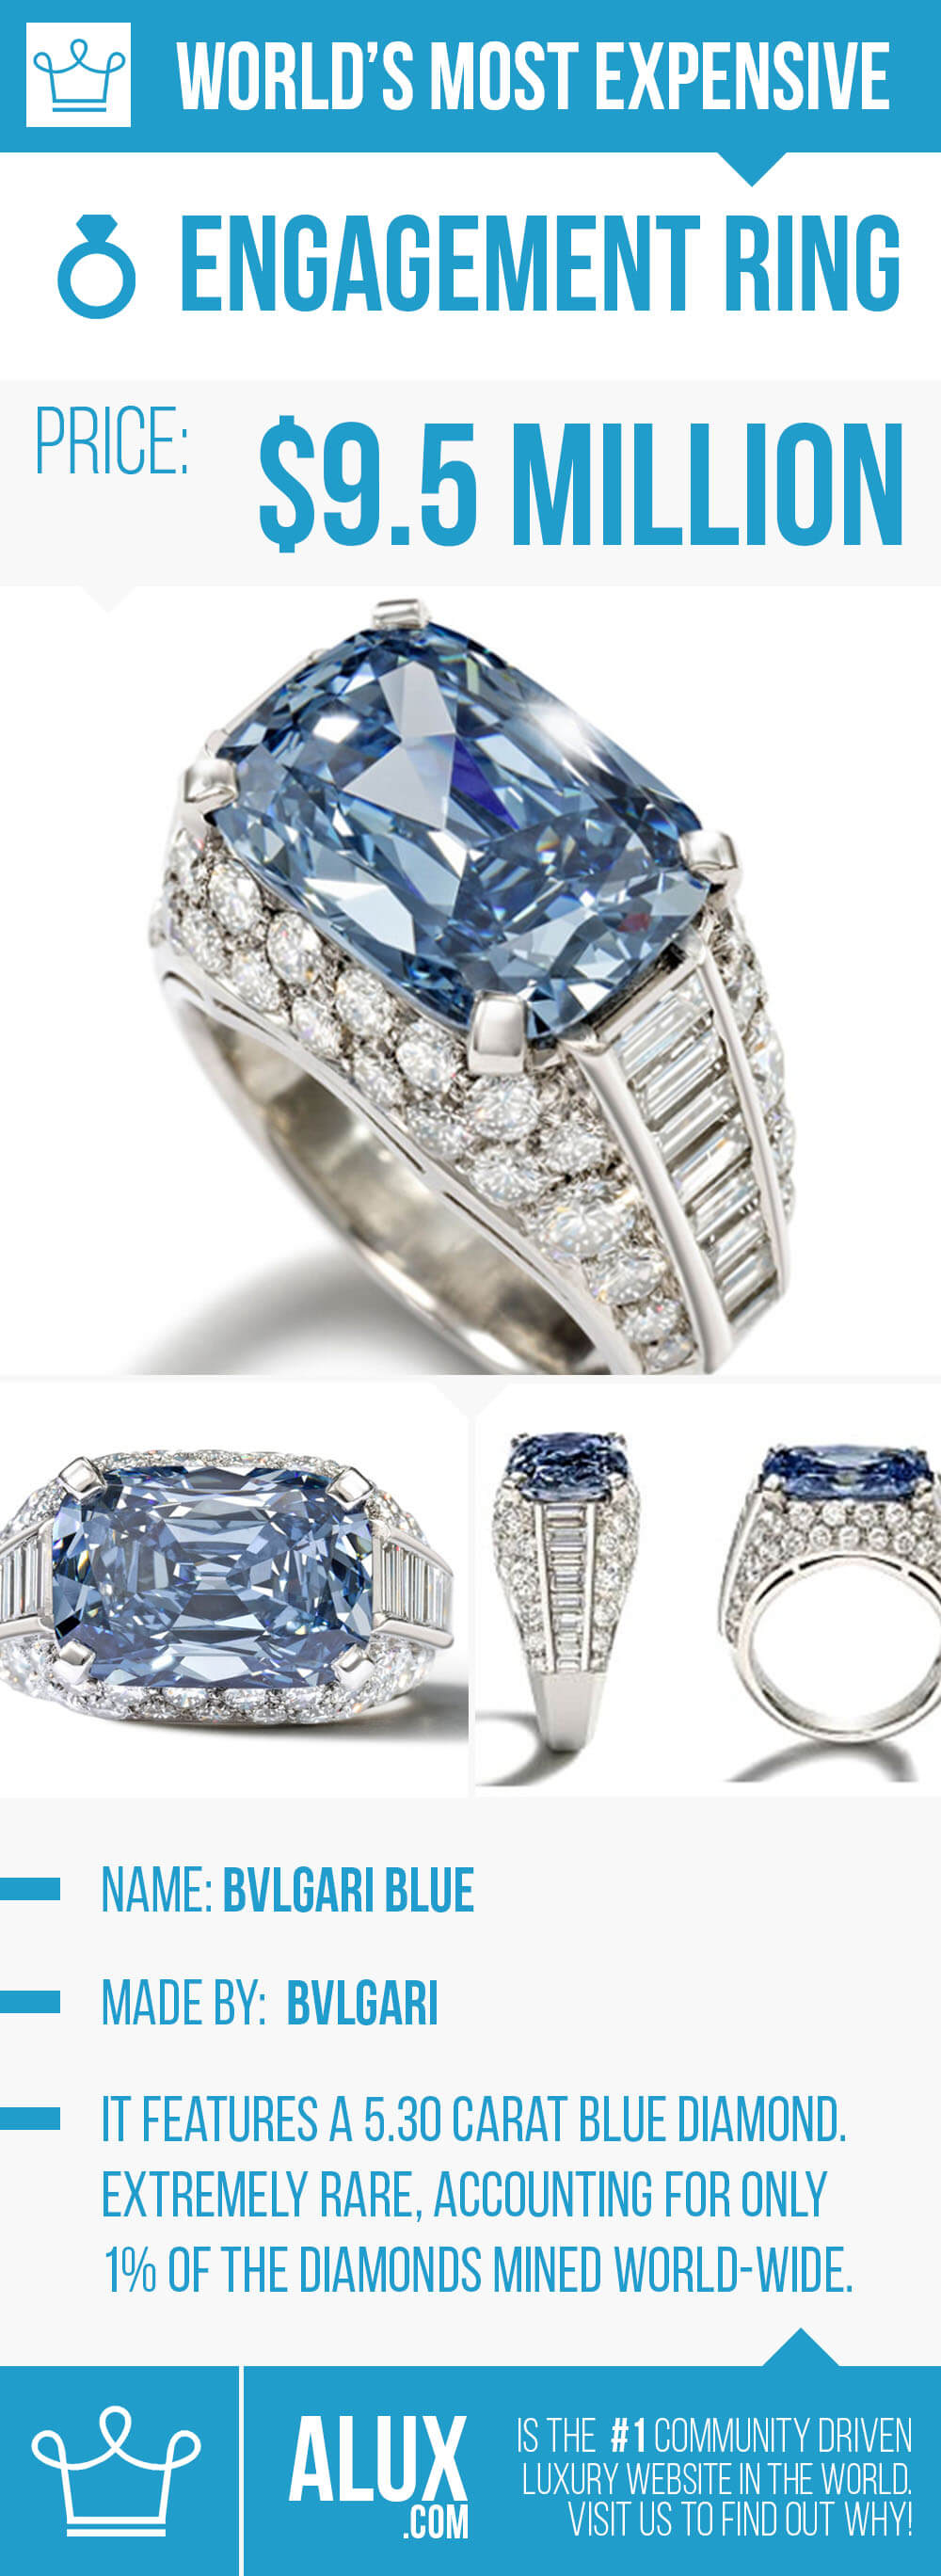 most expensive engagement ring in the world bvlgari blue alux